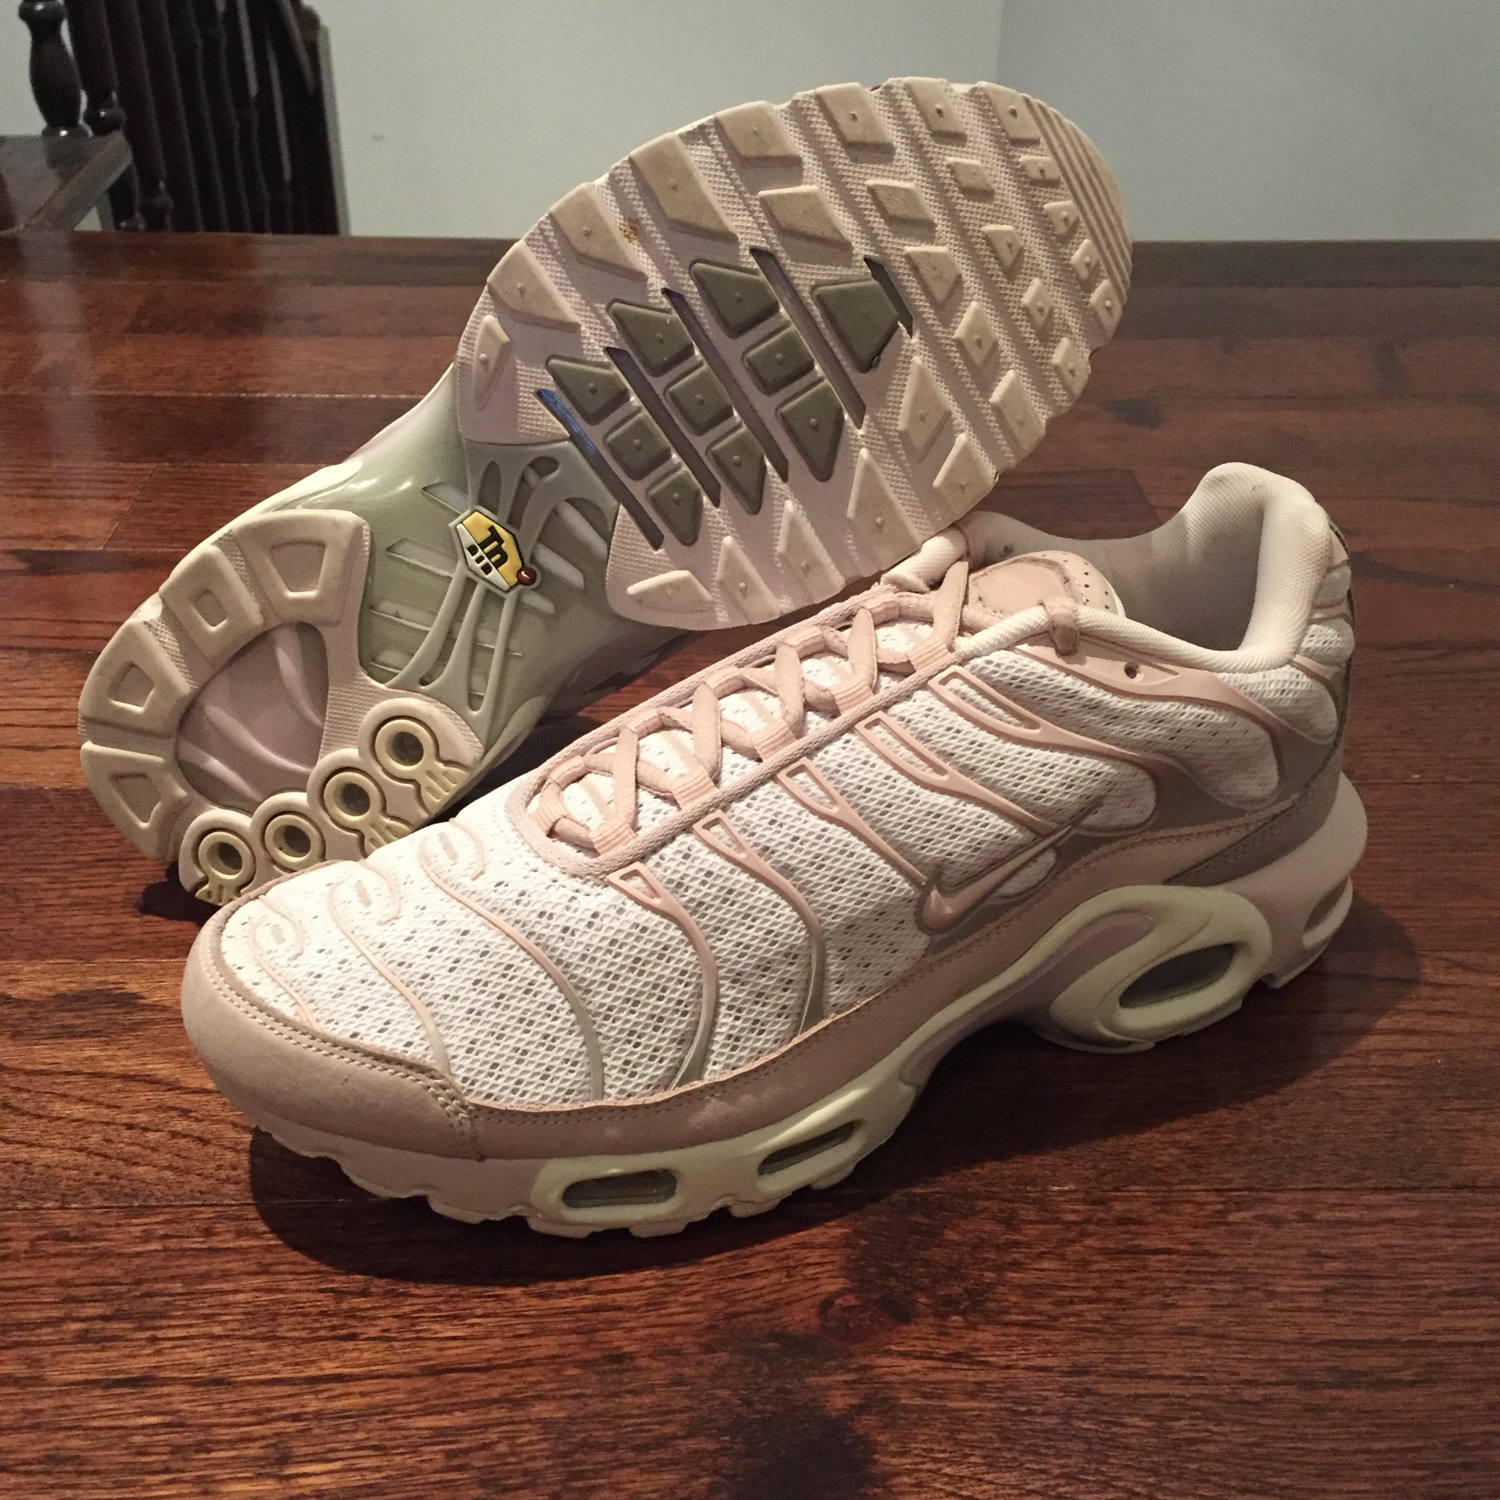 authentic quality great deals 2017 outlet boutique **Nike Lab Air Max Plus Tn Pearl Pink